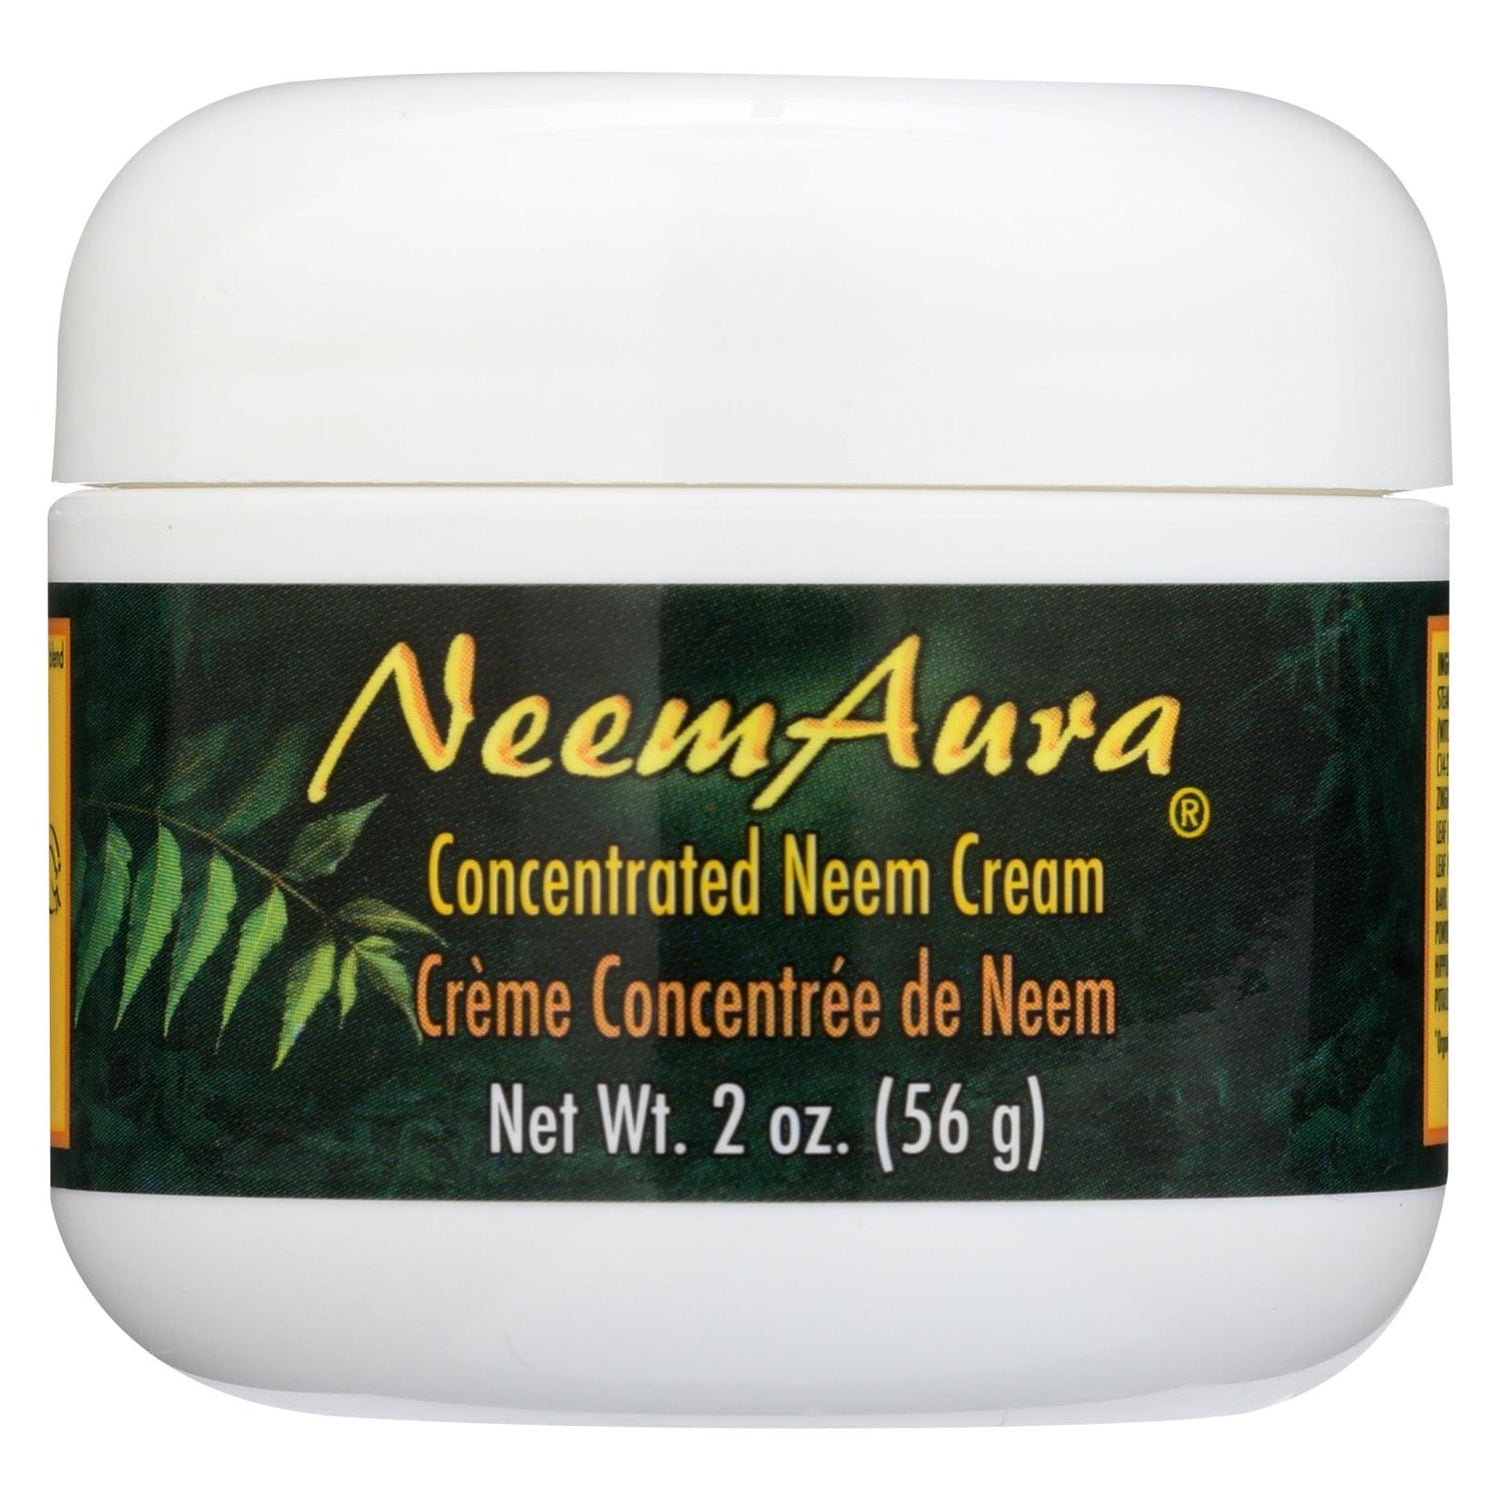 Neem Aura Neem Creme With Aloe And Neem Oil - 2 Oz